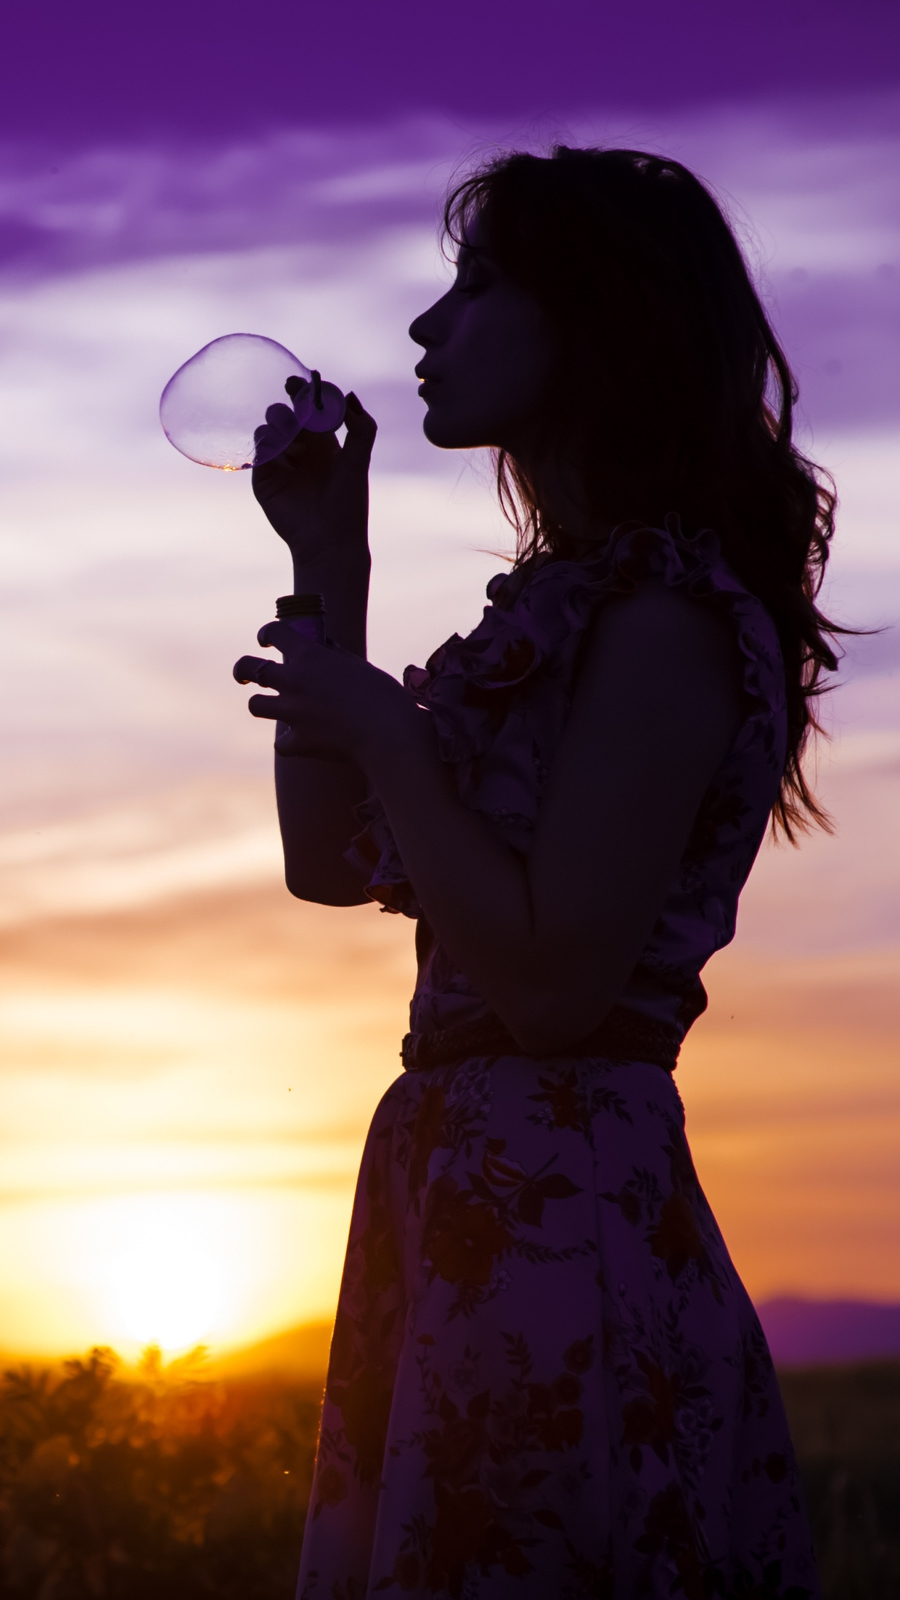 sunset girl soap bubbles iPhone Wallpaper iphoneswallpapers com